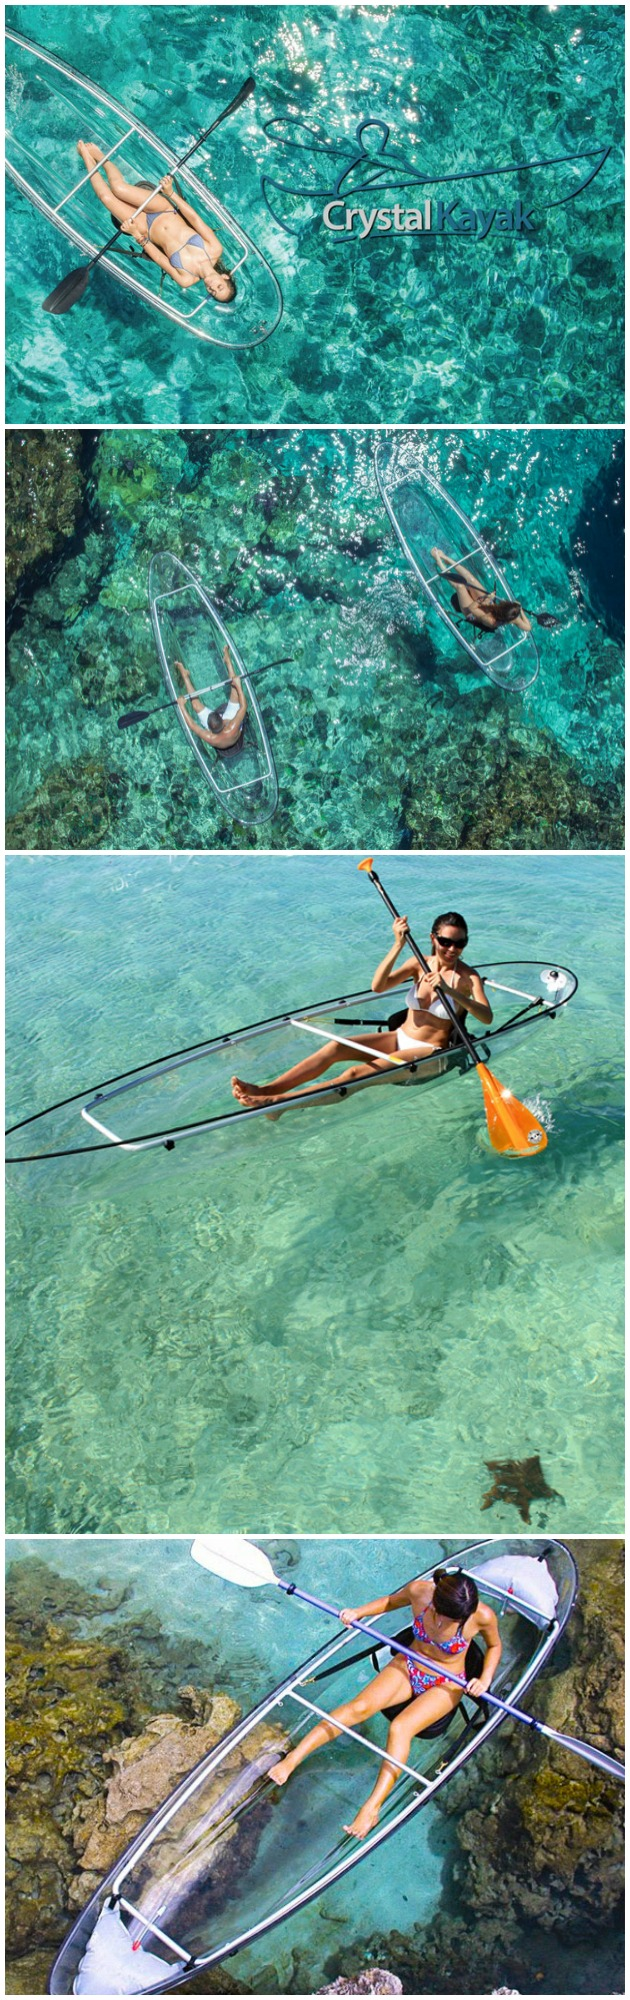 The Crystal Kayak Is A Totally Crystal Clear Kayak That Lets Users